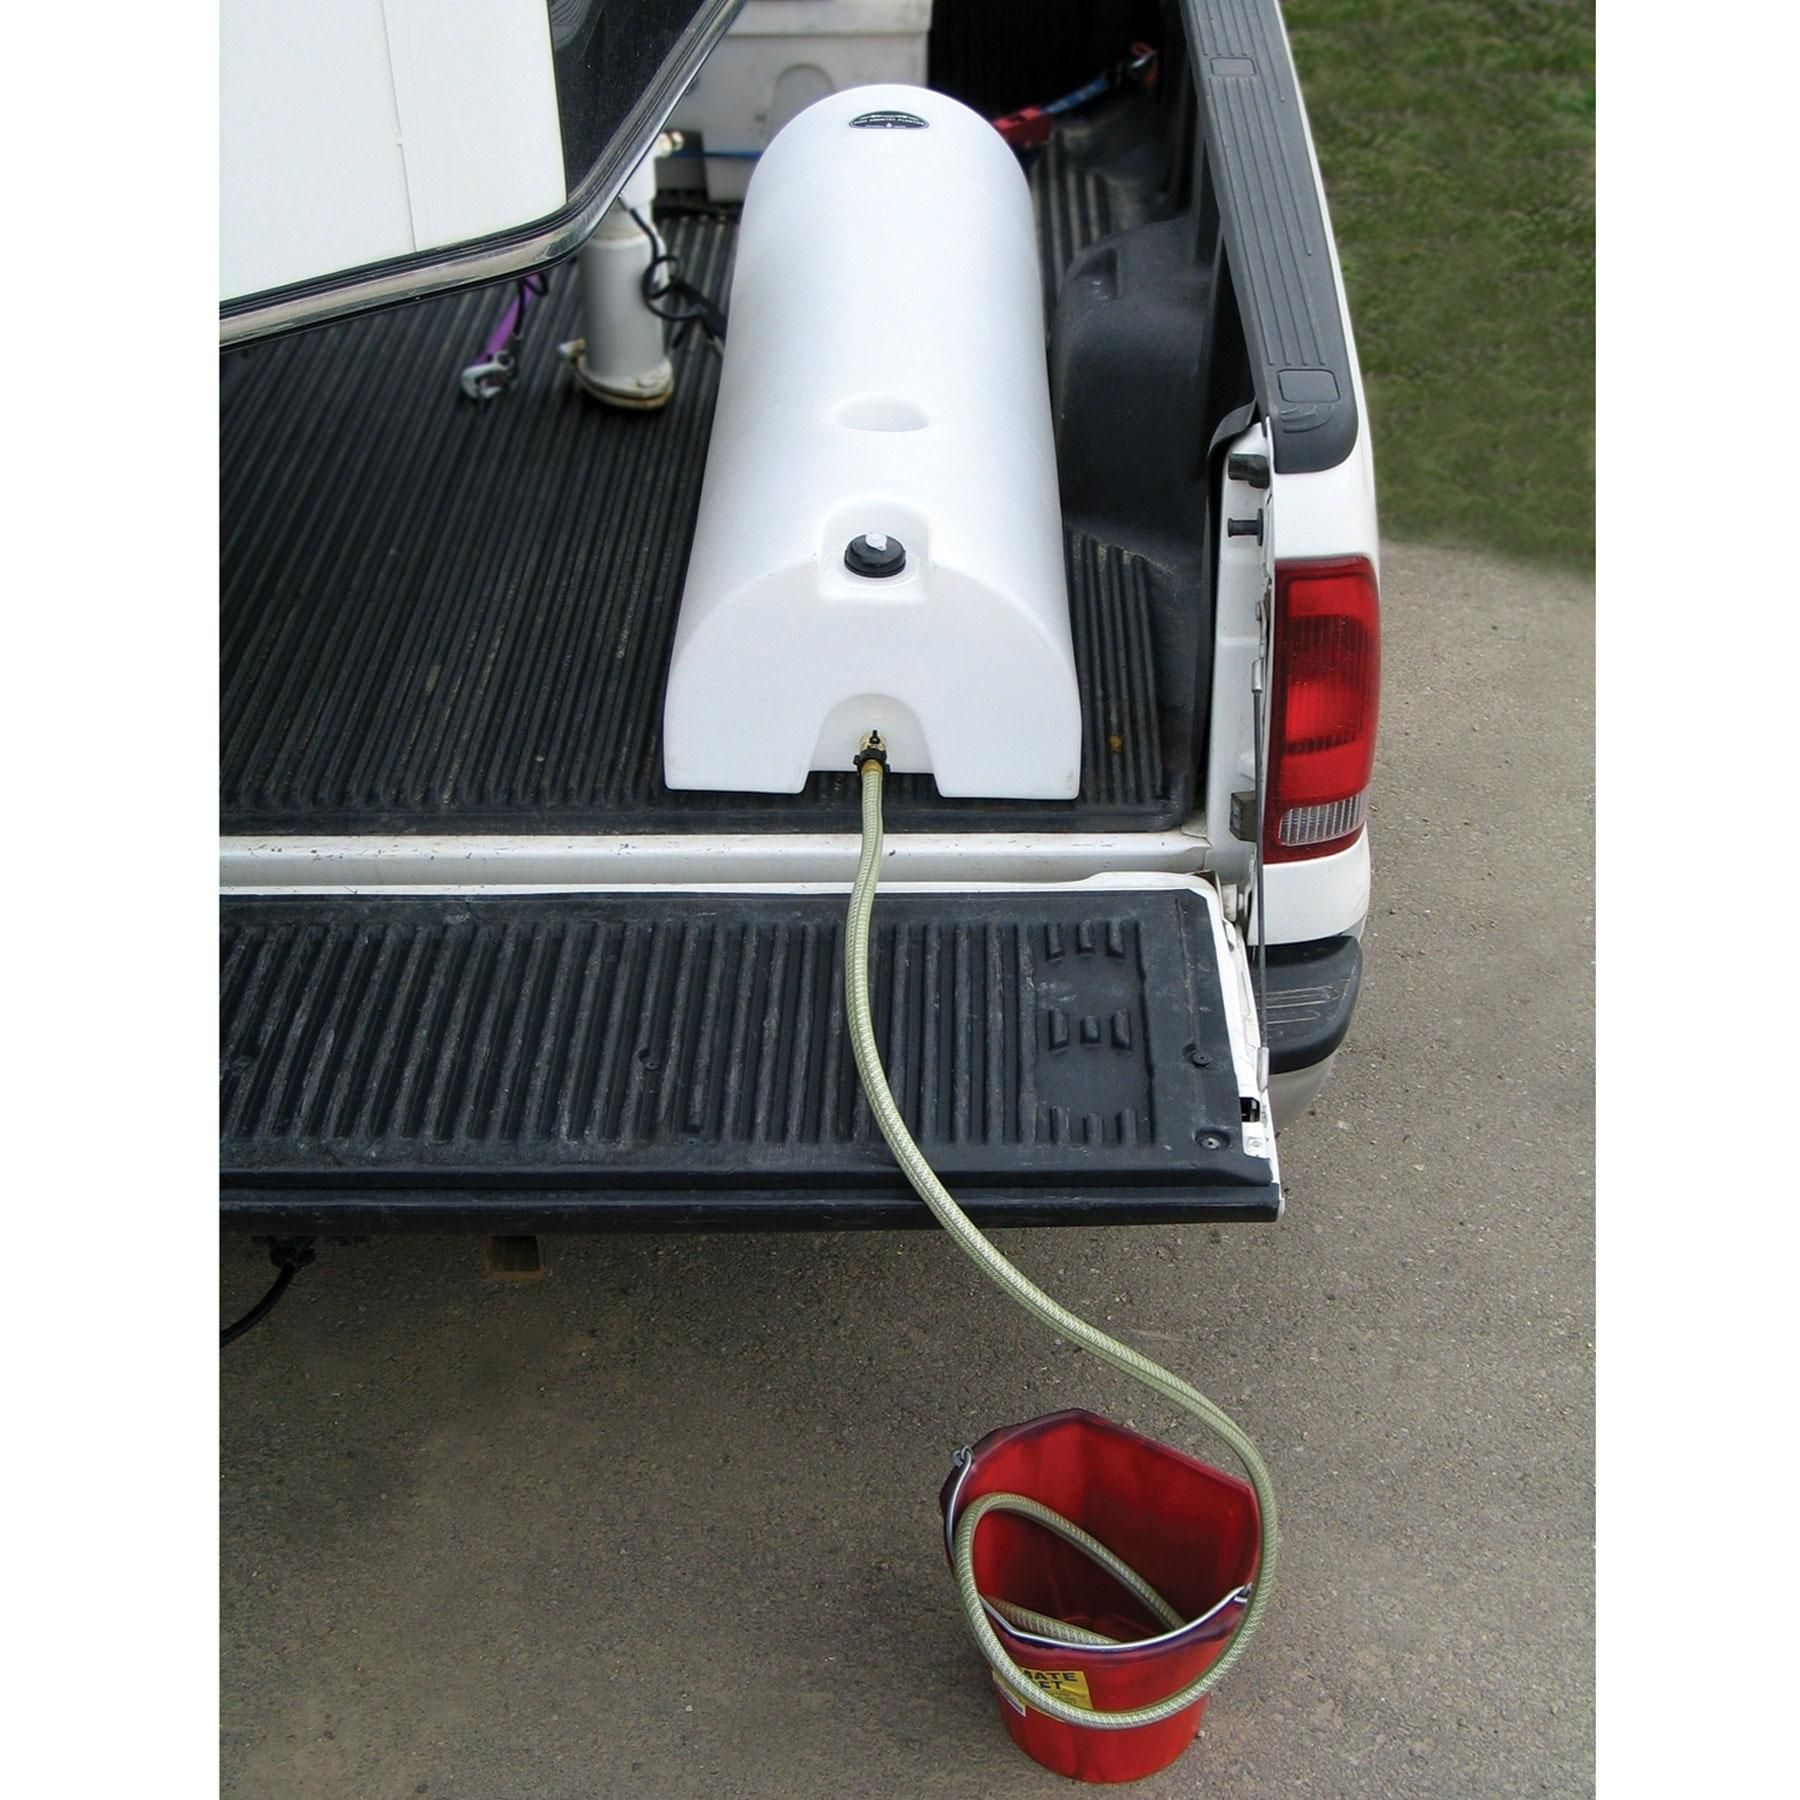 An easy way to haul water in your truck or trailer. Do